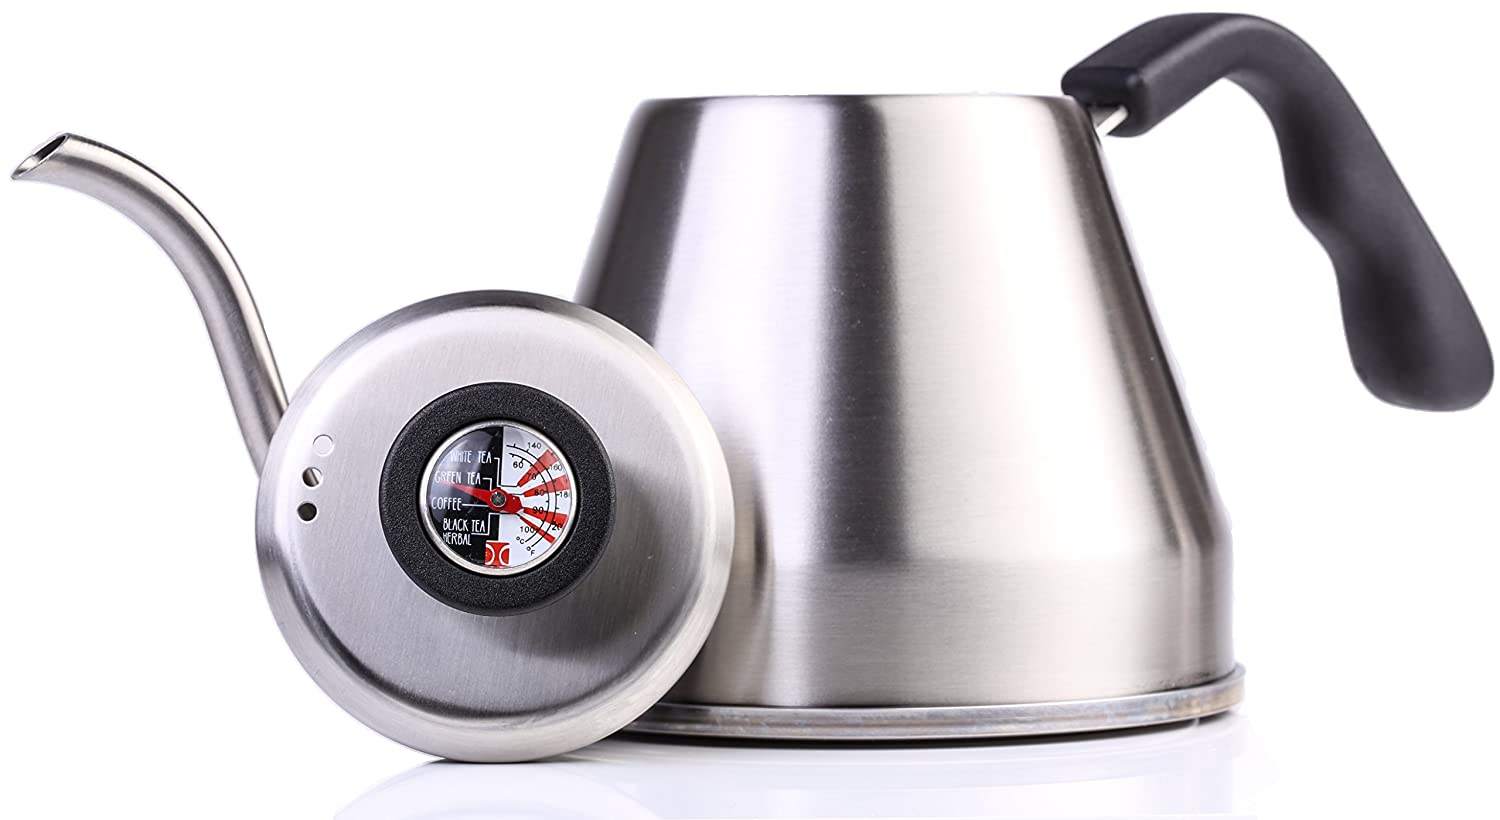 Pour Over Kettle 1.2L I Tea Kettle with Built-In Thermometer, Gooseneck Spout, Heat Resistant Handle, Brushed Stainless Steel Body, by The Elan Collective - Rich Black